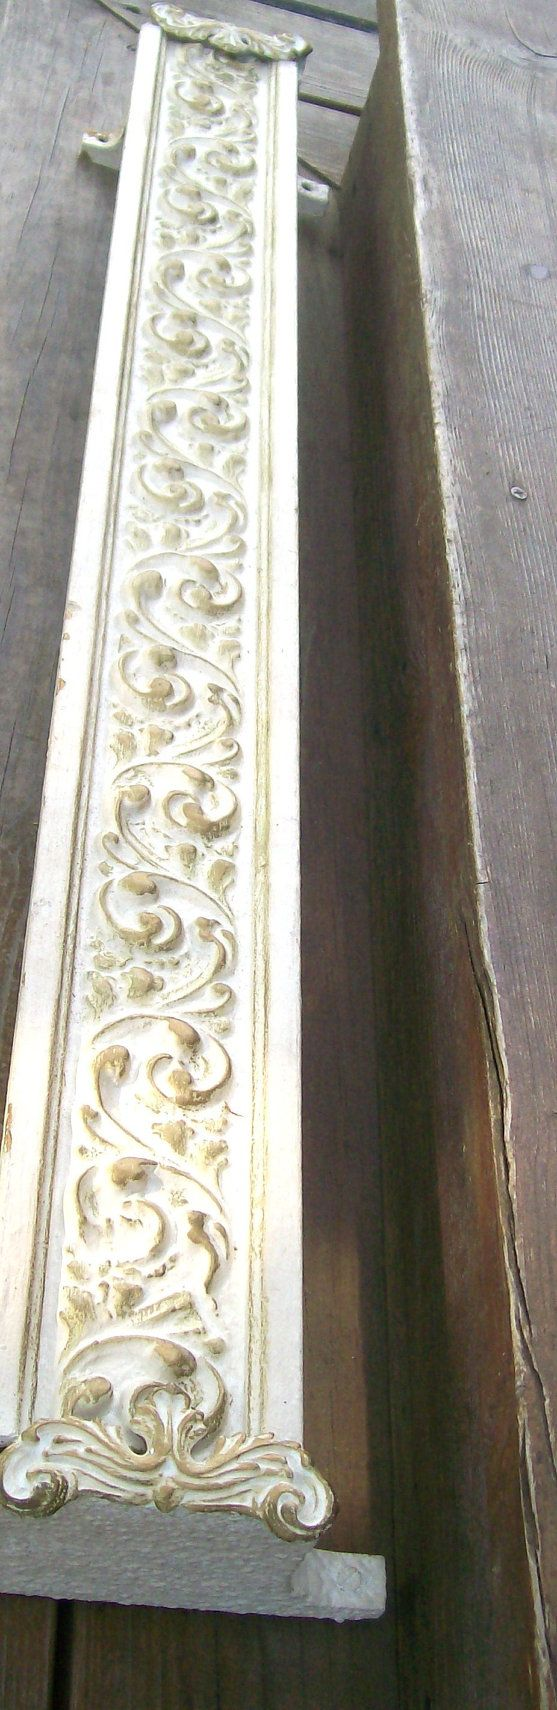 Reserved for valry fetrow wooden cornice primitive picture - French Shabby Chic White Gold Wood Valance Box